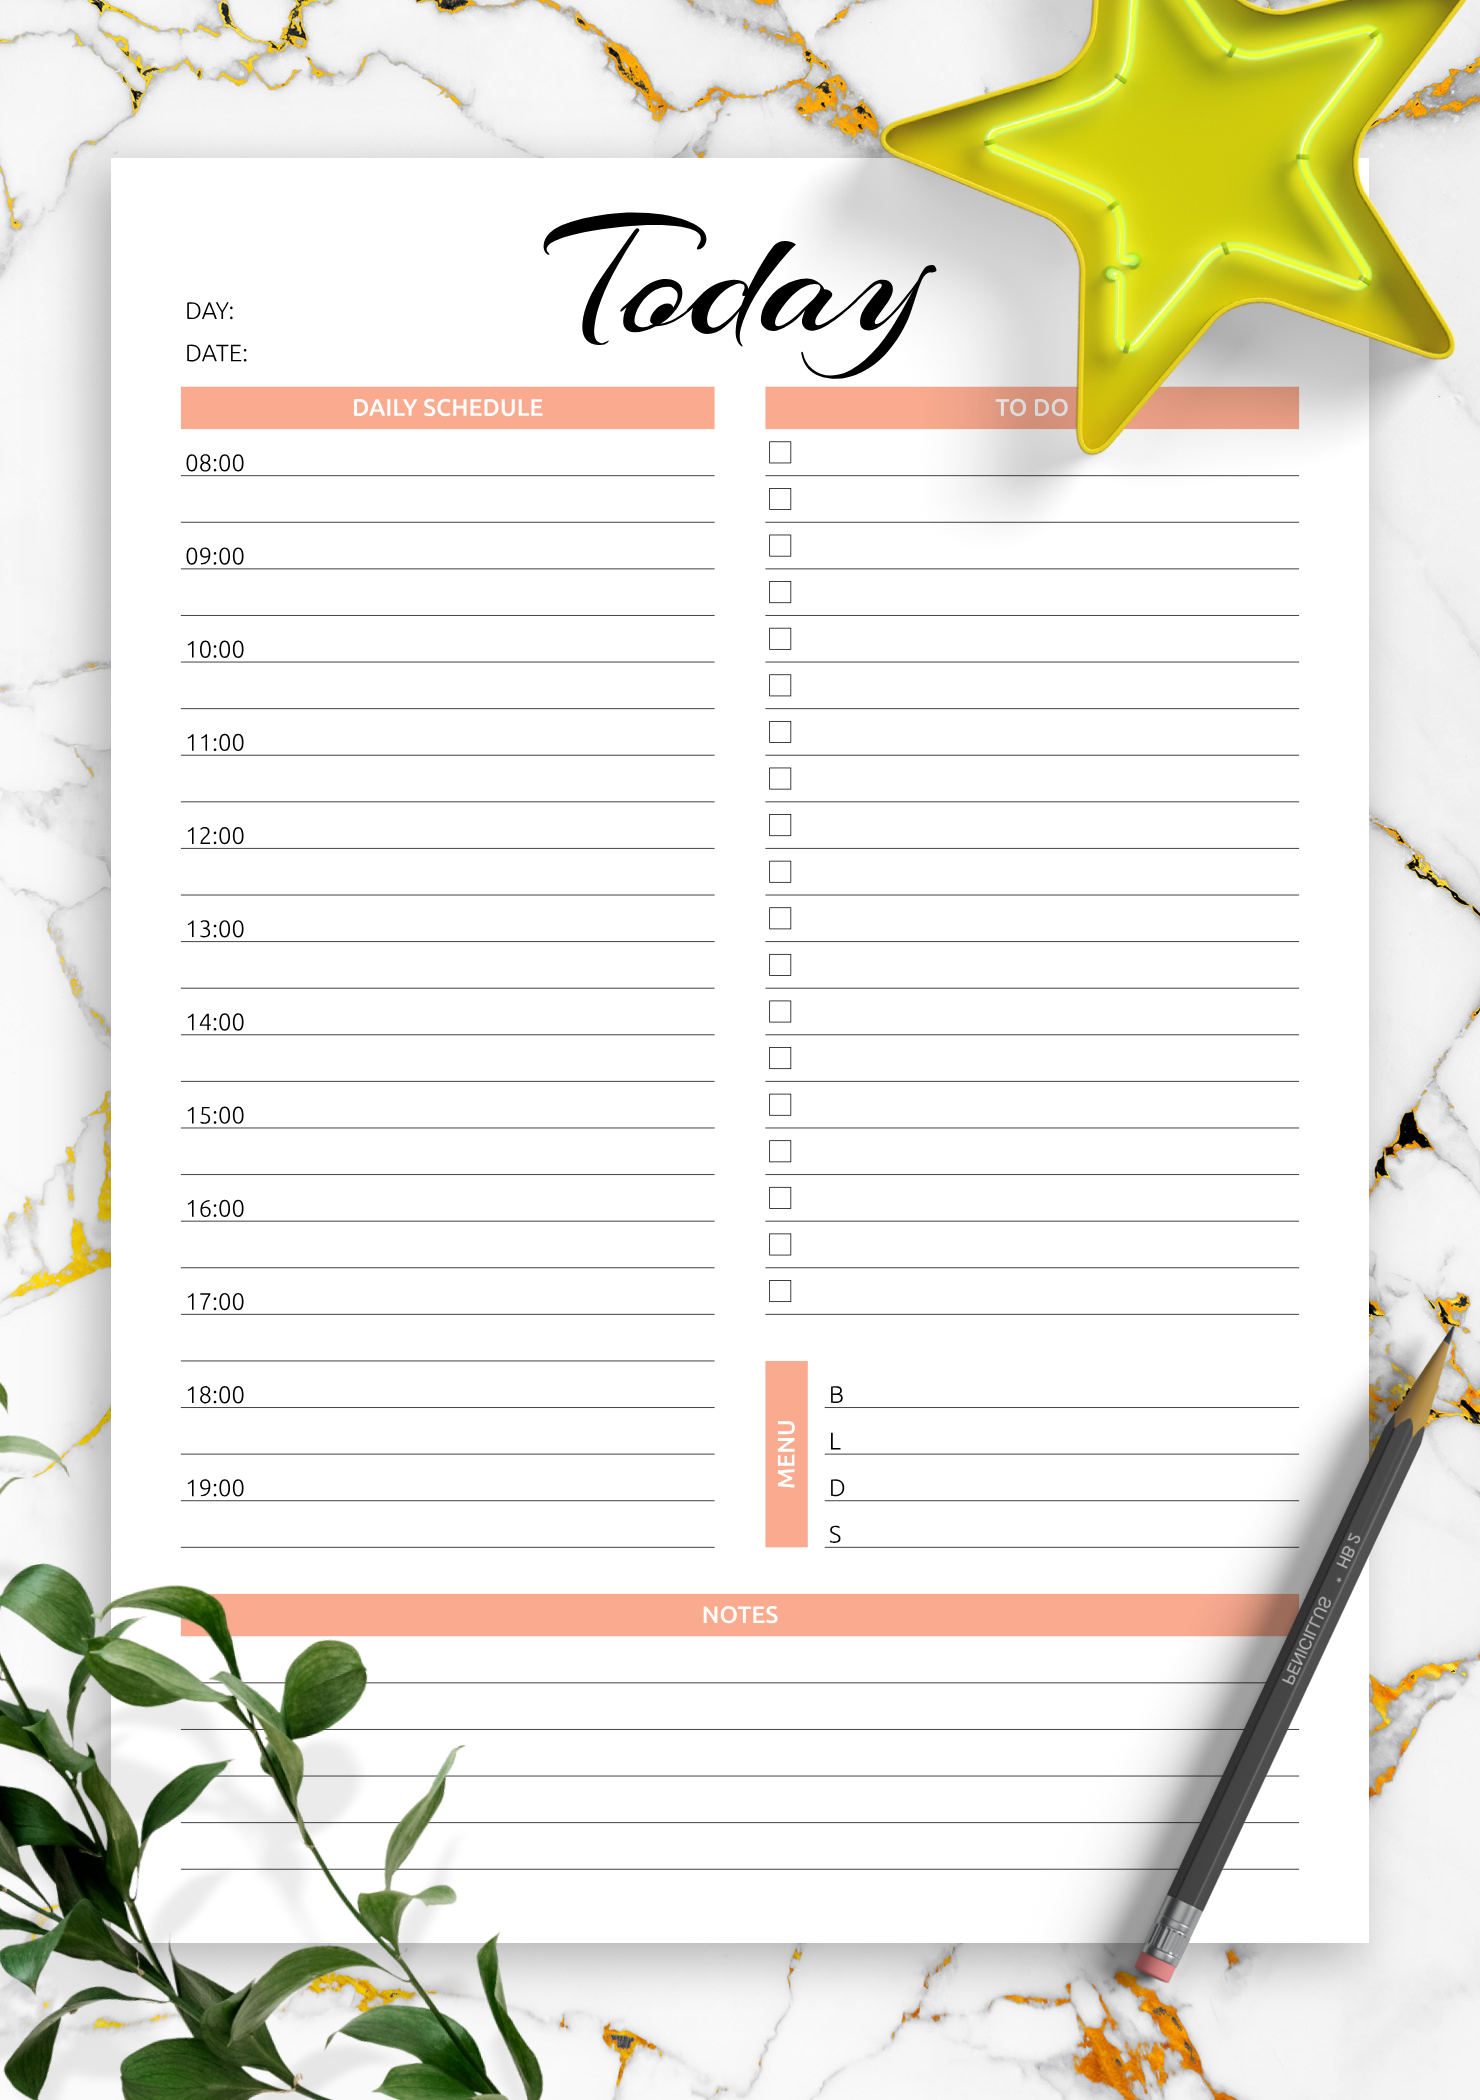 Download Printable Today Hourly Planner Pdf Daily Calendar By Hour Free